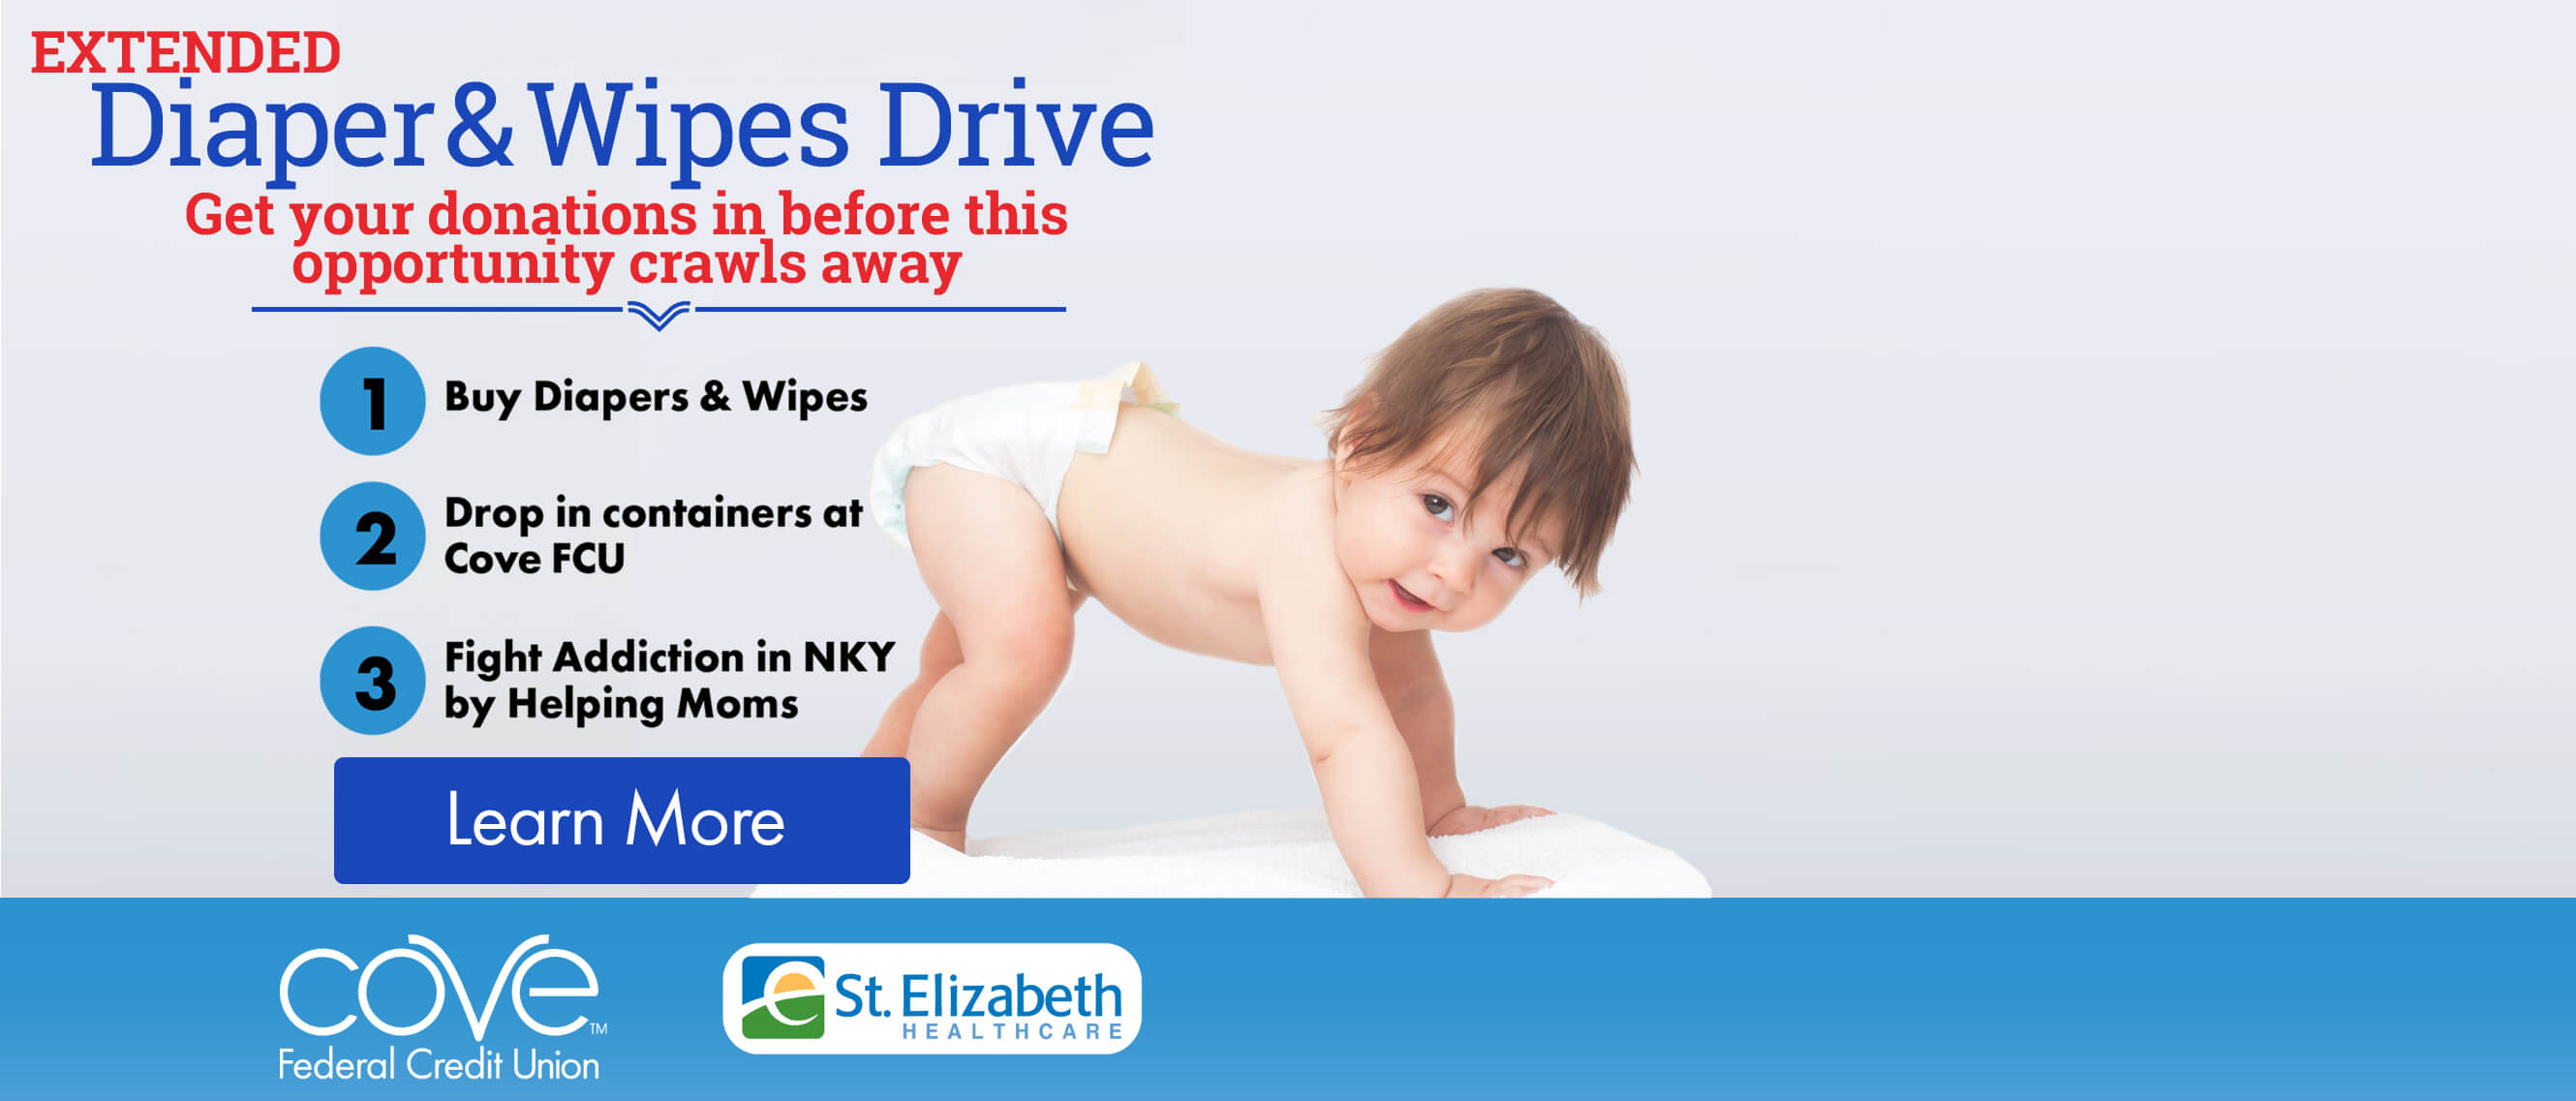 2021 Diapers & Wipes Drive 1. Buy Diapers & Wipes 2. Drop in containers at Cove FCU 3. Fight Addiction in NKY by Helping Moms